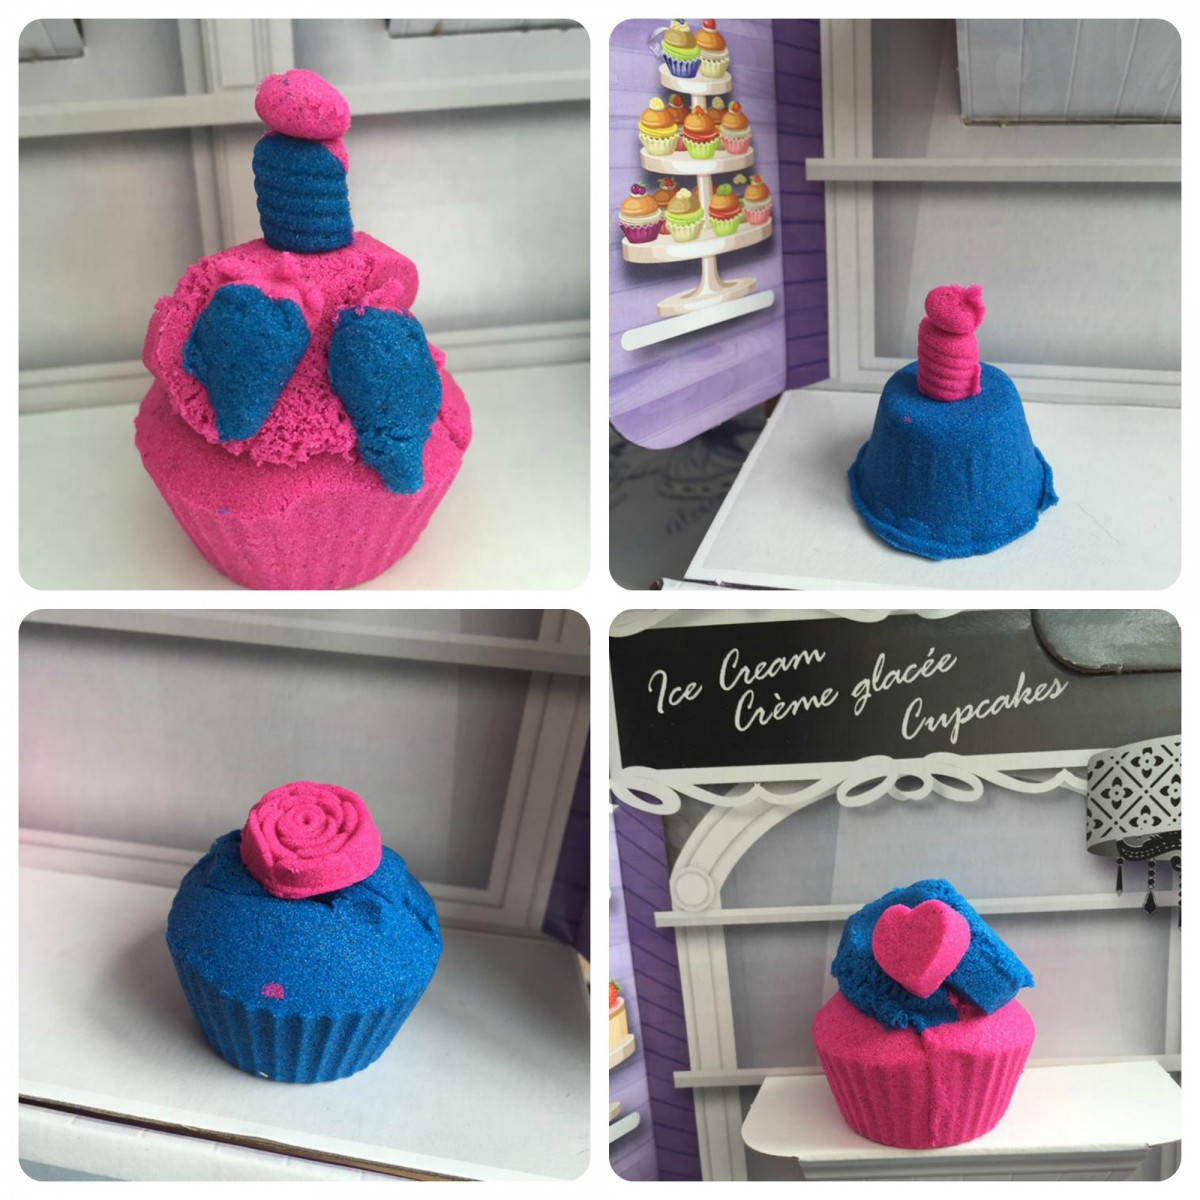 Bakery Boutique cakes